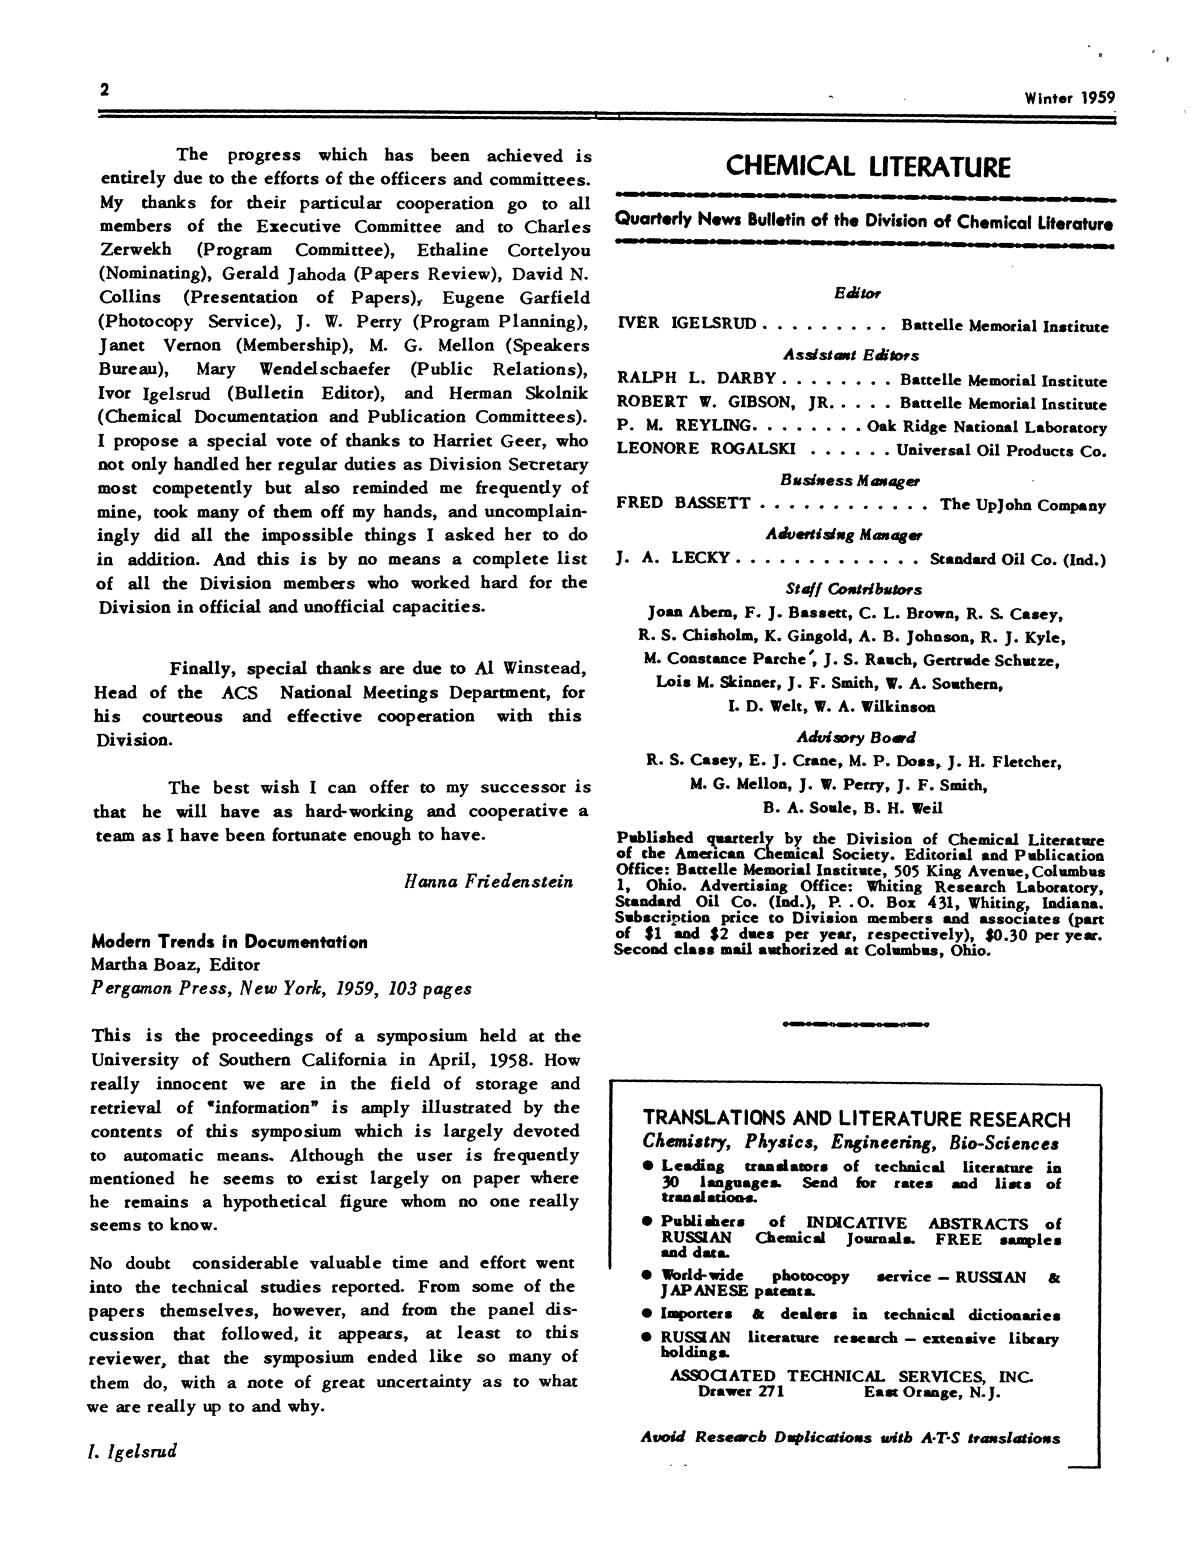 Chemical Literature, Volume 11, Number 4, Winter 1959                                                                                                      2